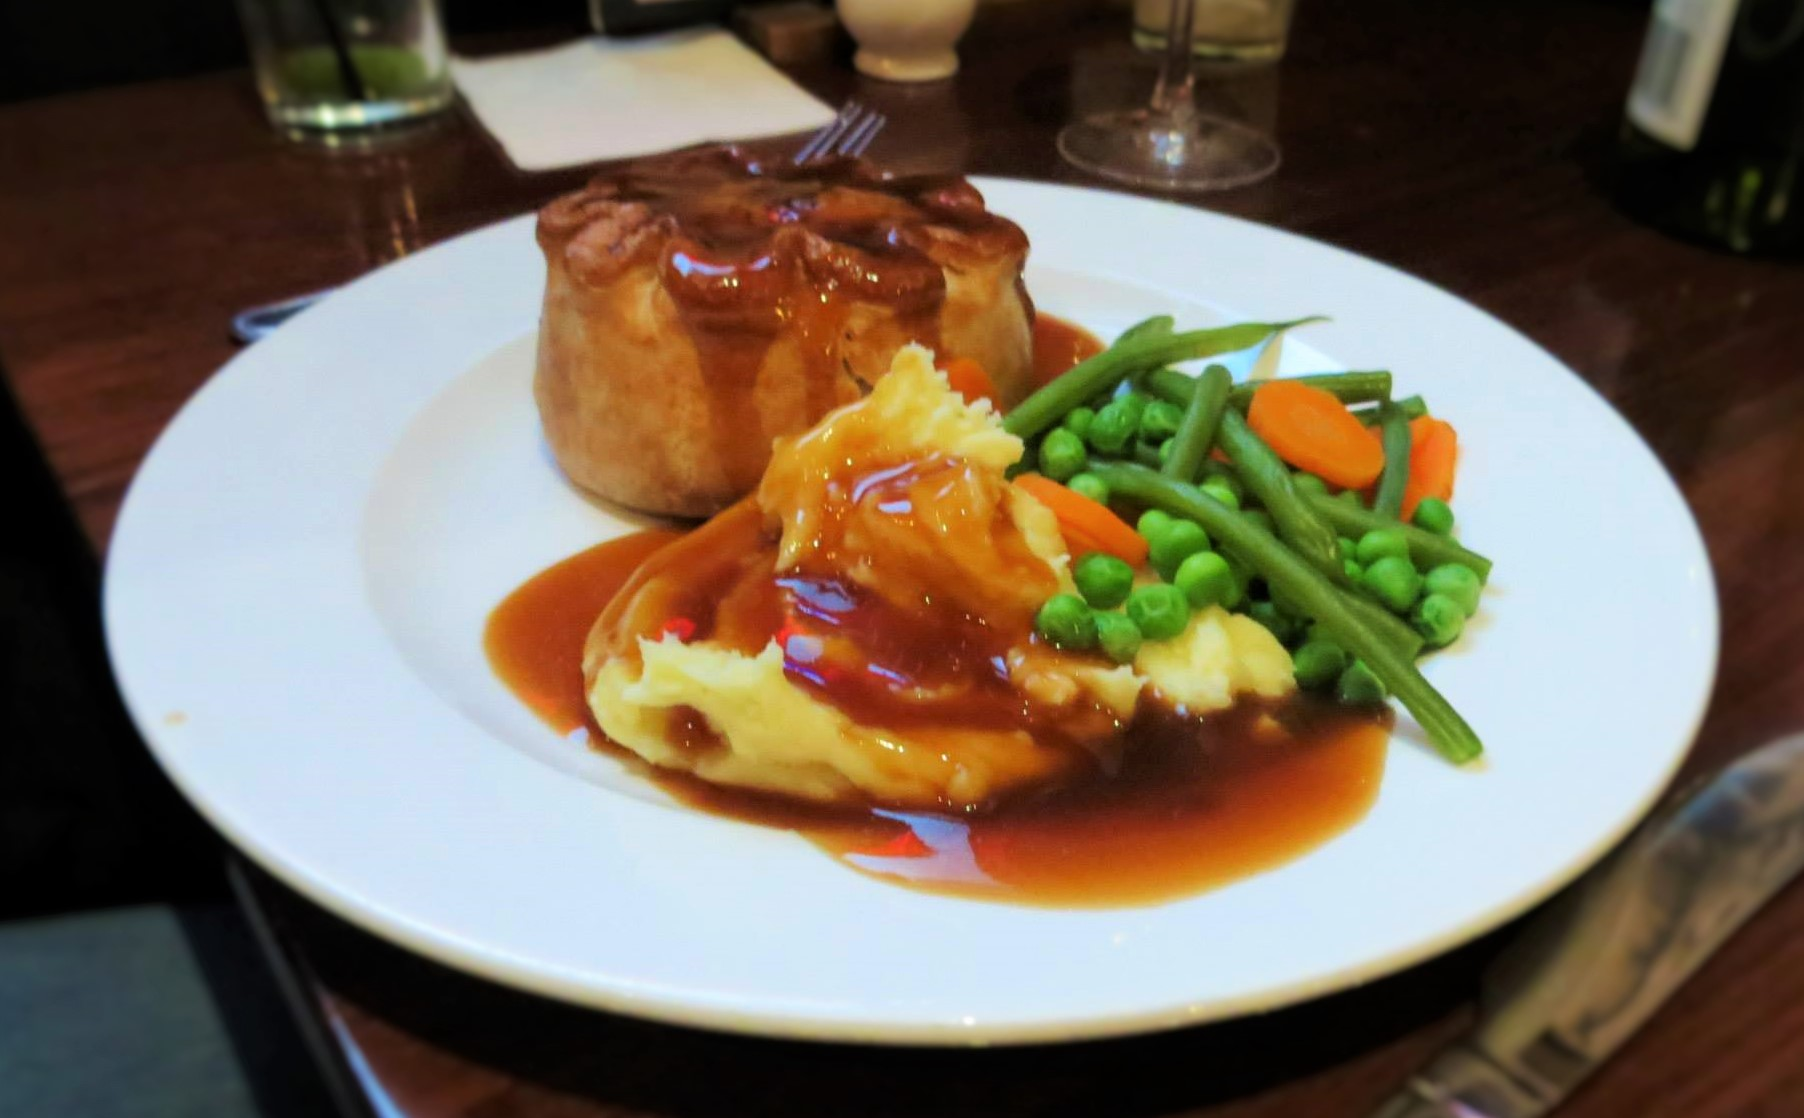 British Beef and Ale Pie with Worcestershire Sauce and Veggies